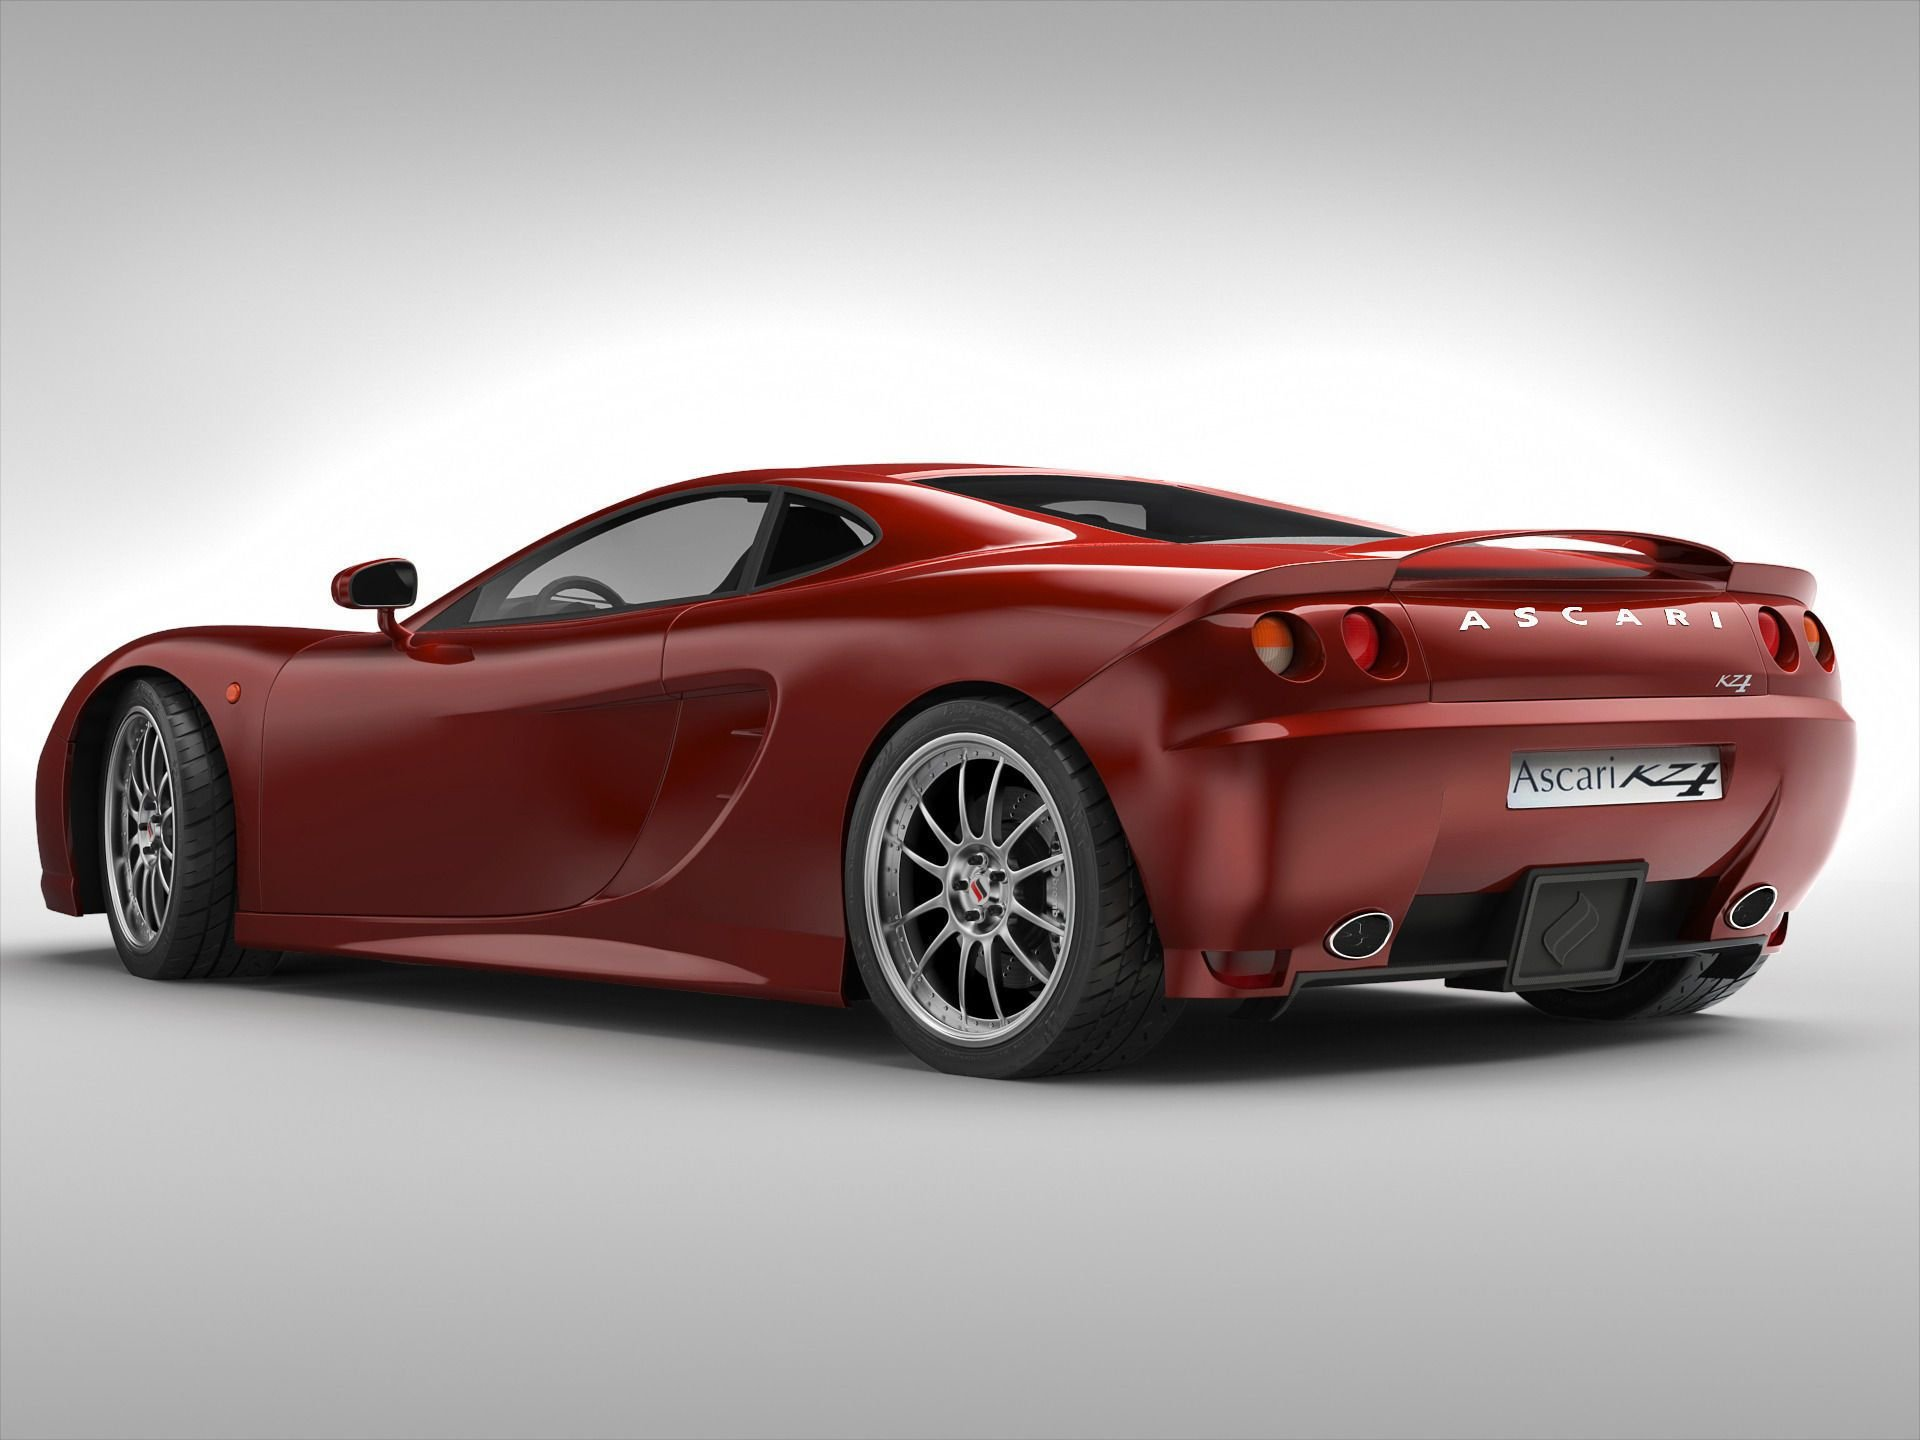 Latest Ascari Kz1 British Sports Car 3D Model Max Obj 3Ds Fbx Free Download